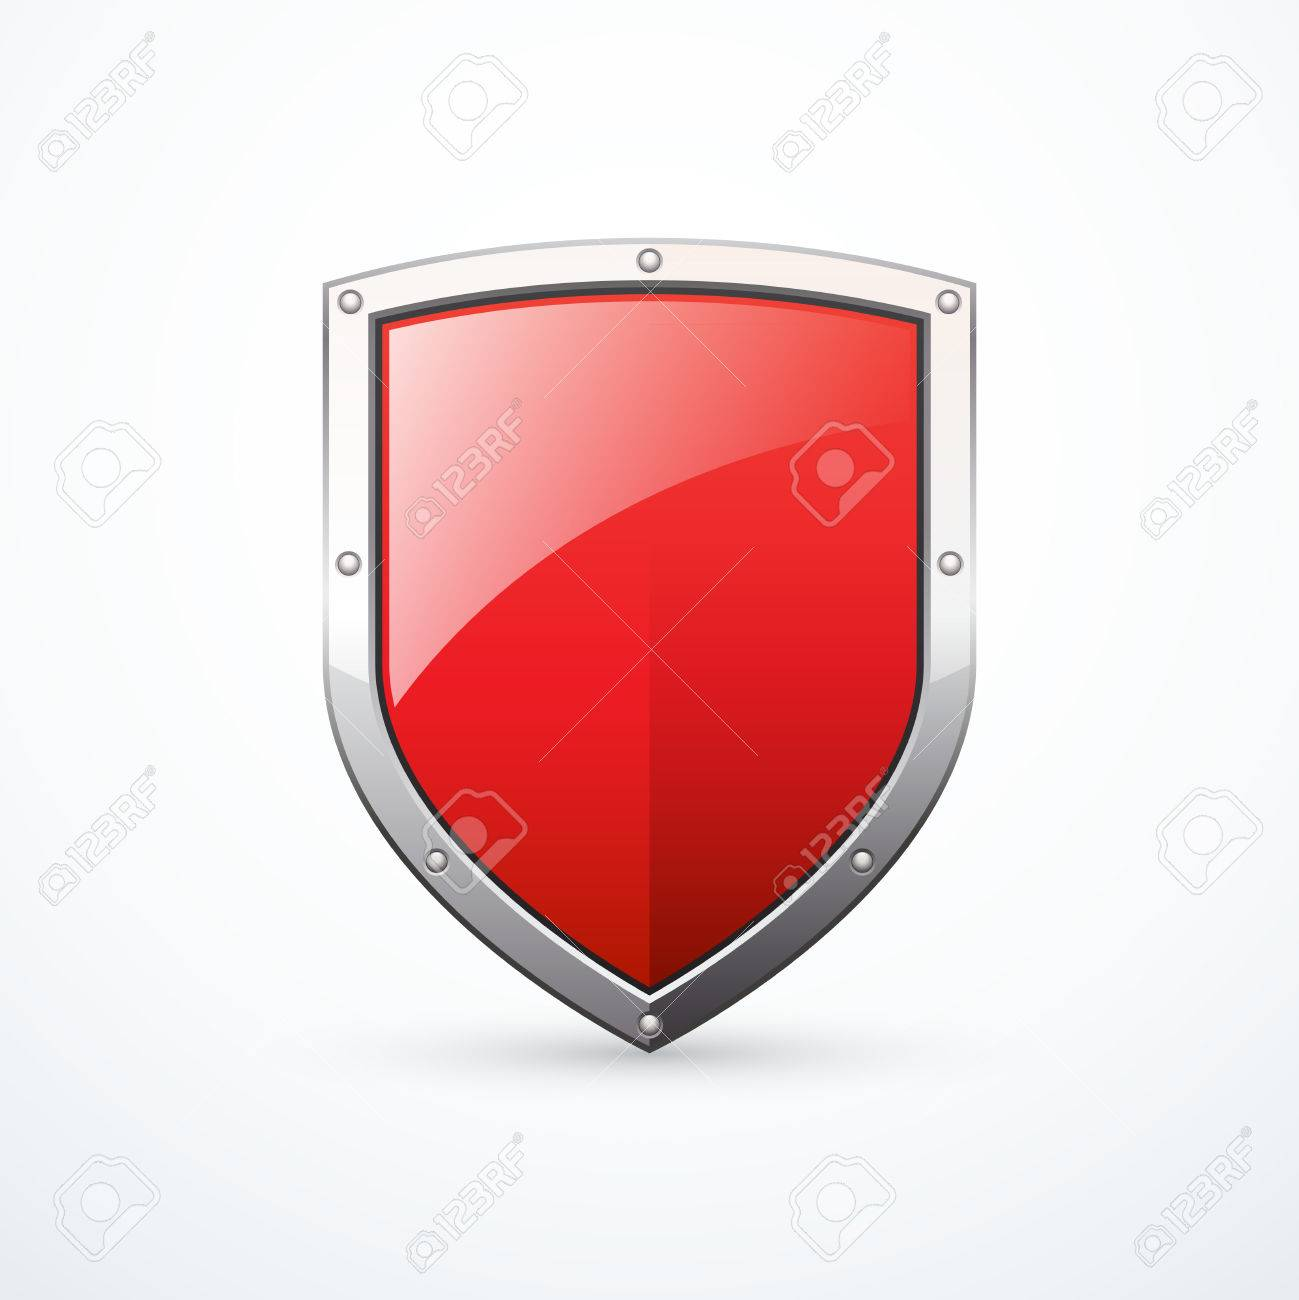 Vector red shield - 57999837